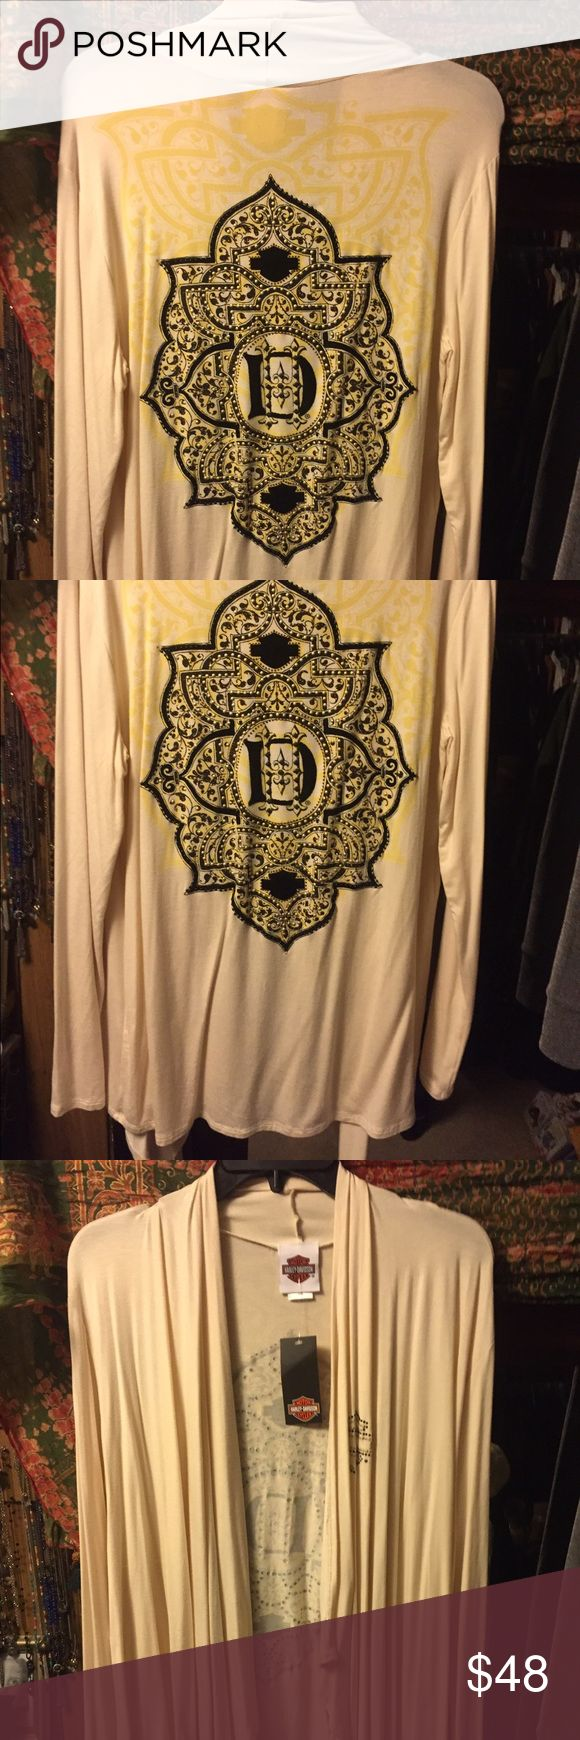 Harley Davidson Cream Cardigan. New. Brand new with tags.  Ladies rayon/spandex blend cream Cardigan. New with tags. Size is small/medium. Open front, no fasteners. Harley-Davidson Tops